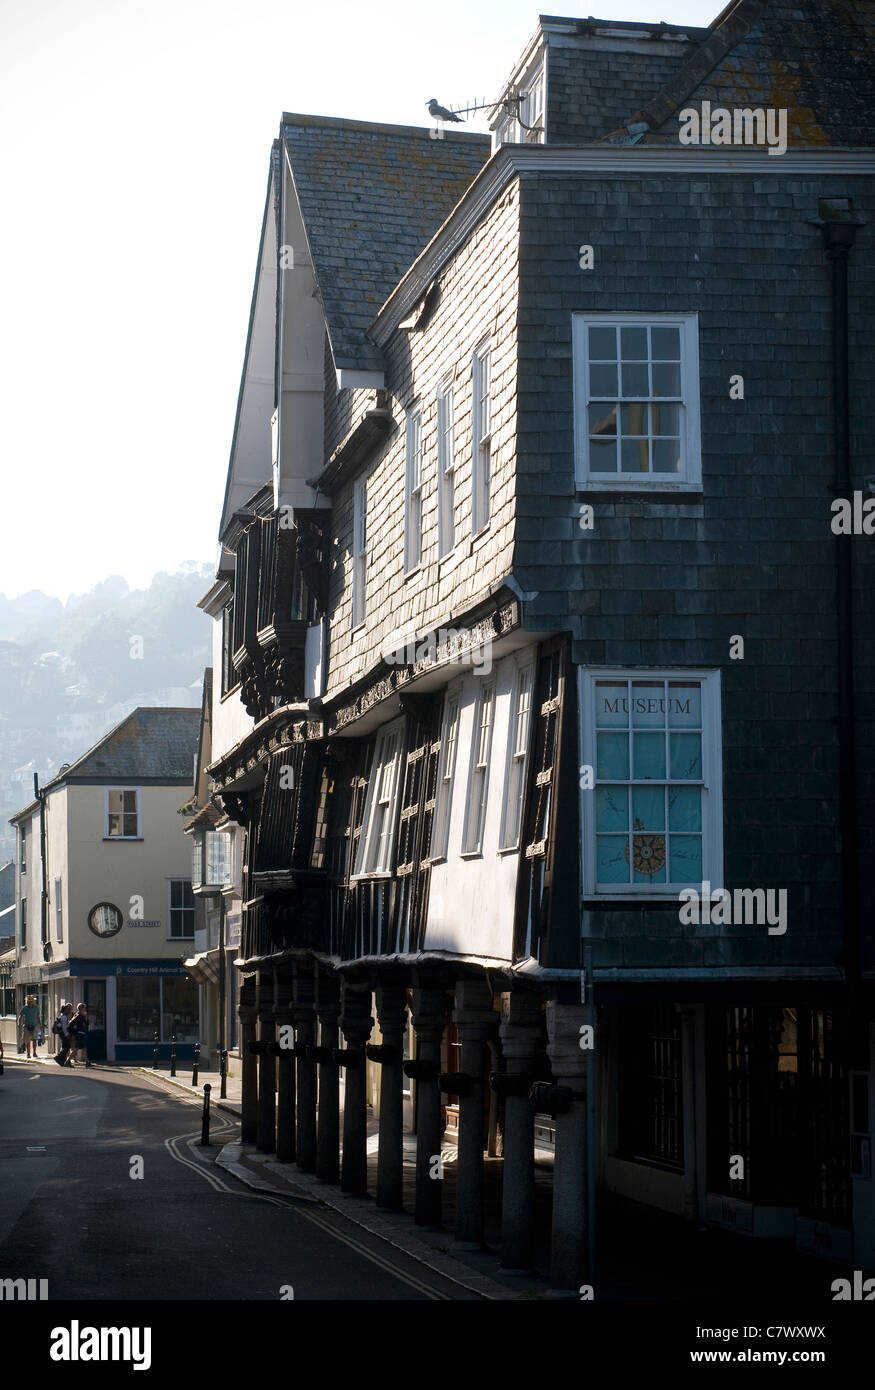 Dartmouth Museum is a museum housed in an atmospheric old merchant's house, built in 16 century, - Stock Image